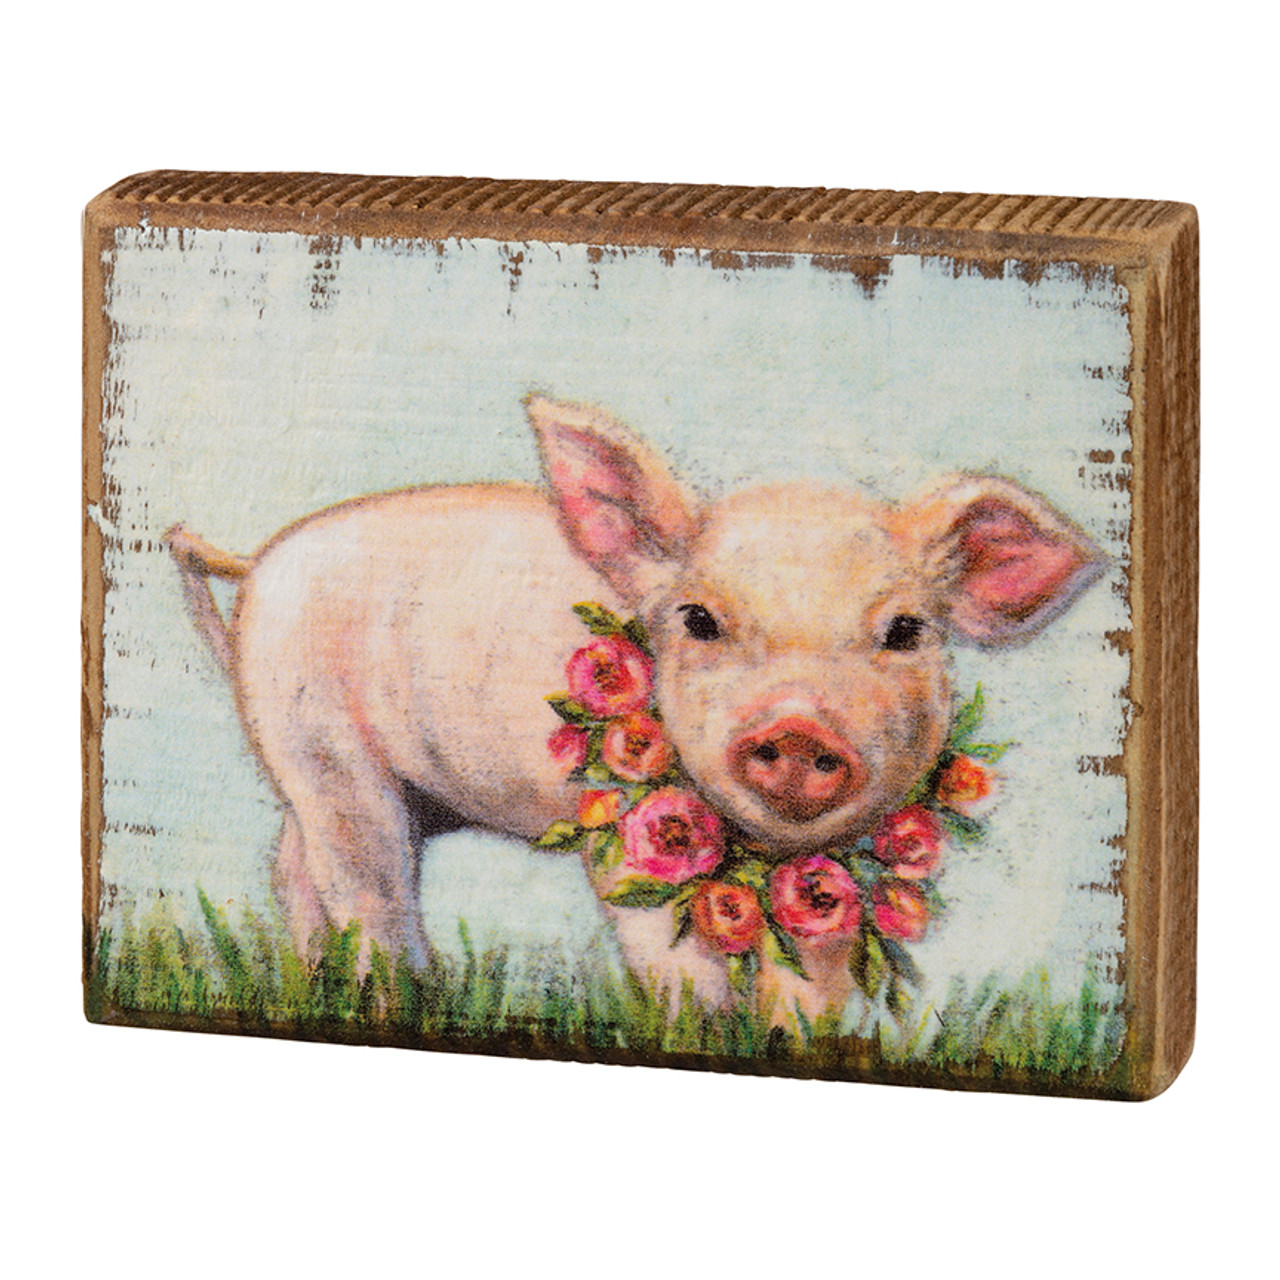 Springtime Piglet with Floral Wreath Wooden Block Sign